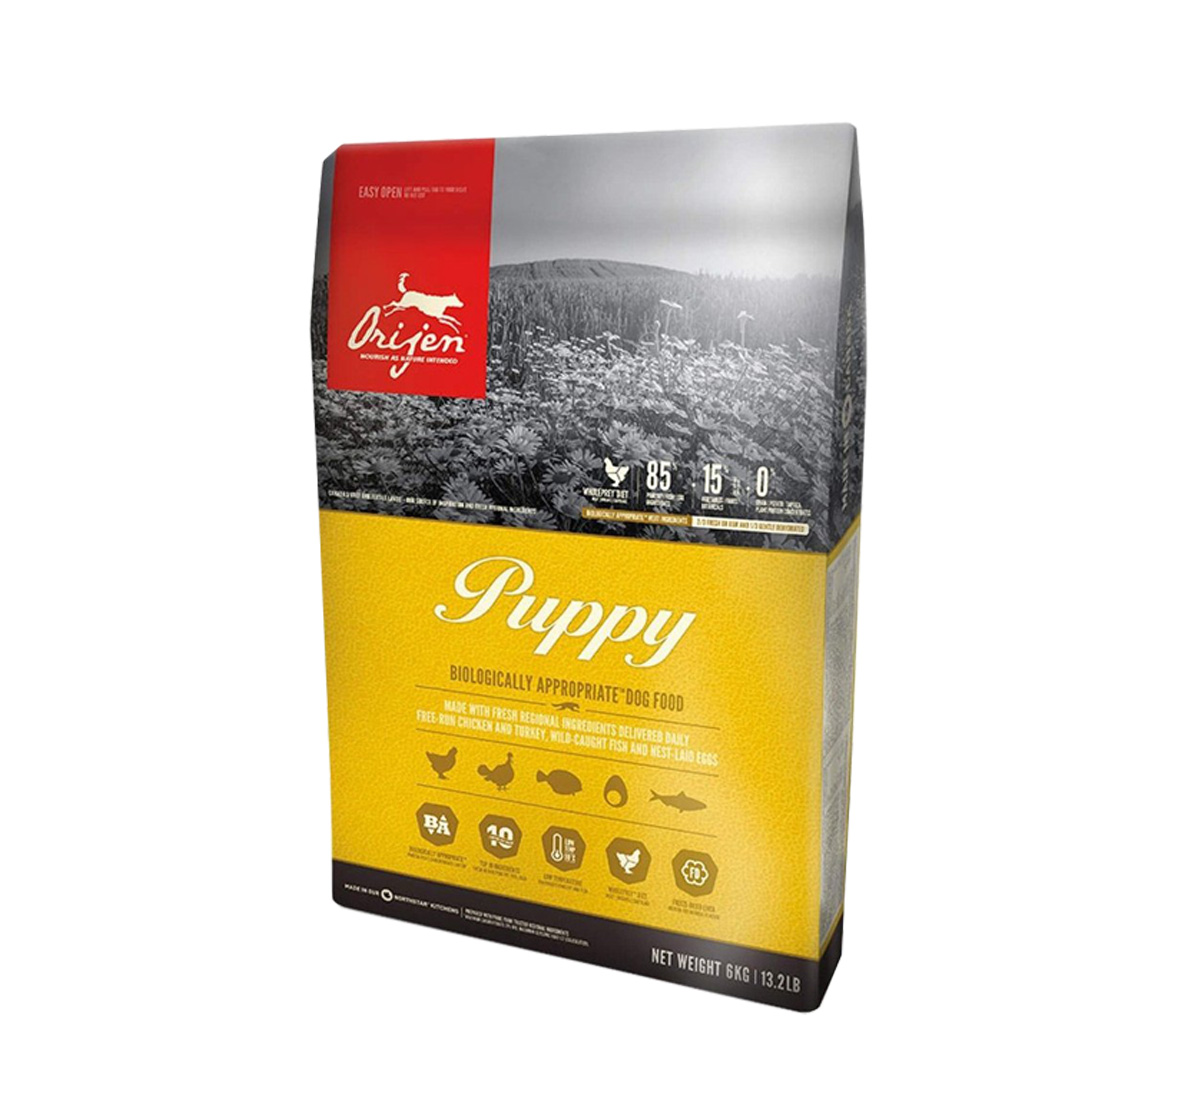 Orijen Puppy Food - 6 Kg